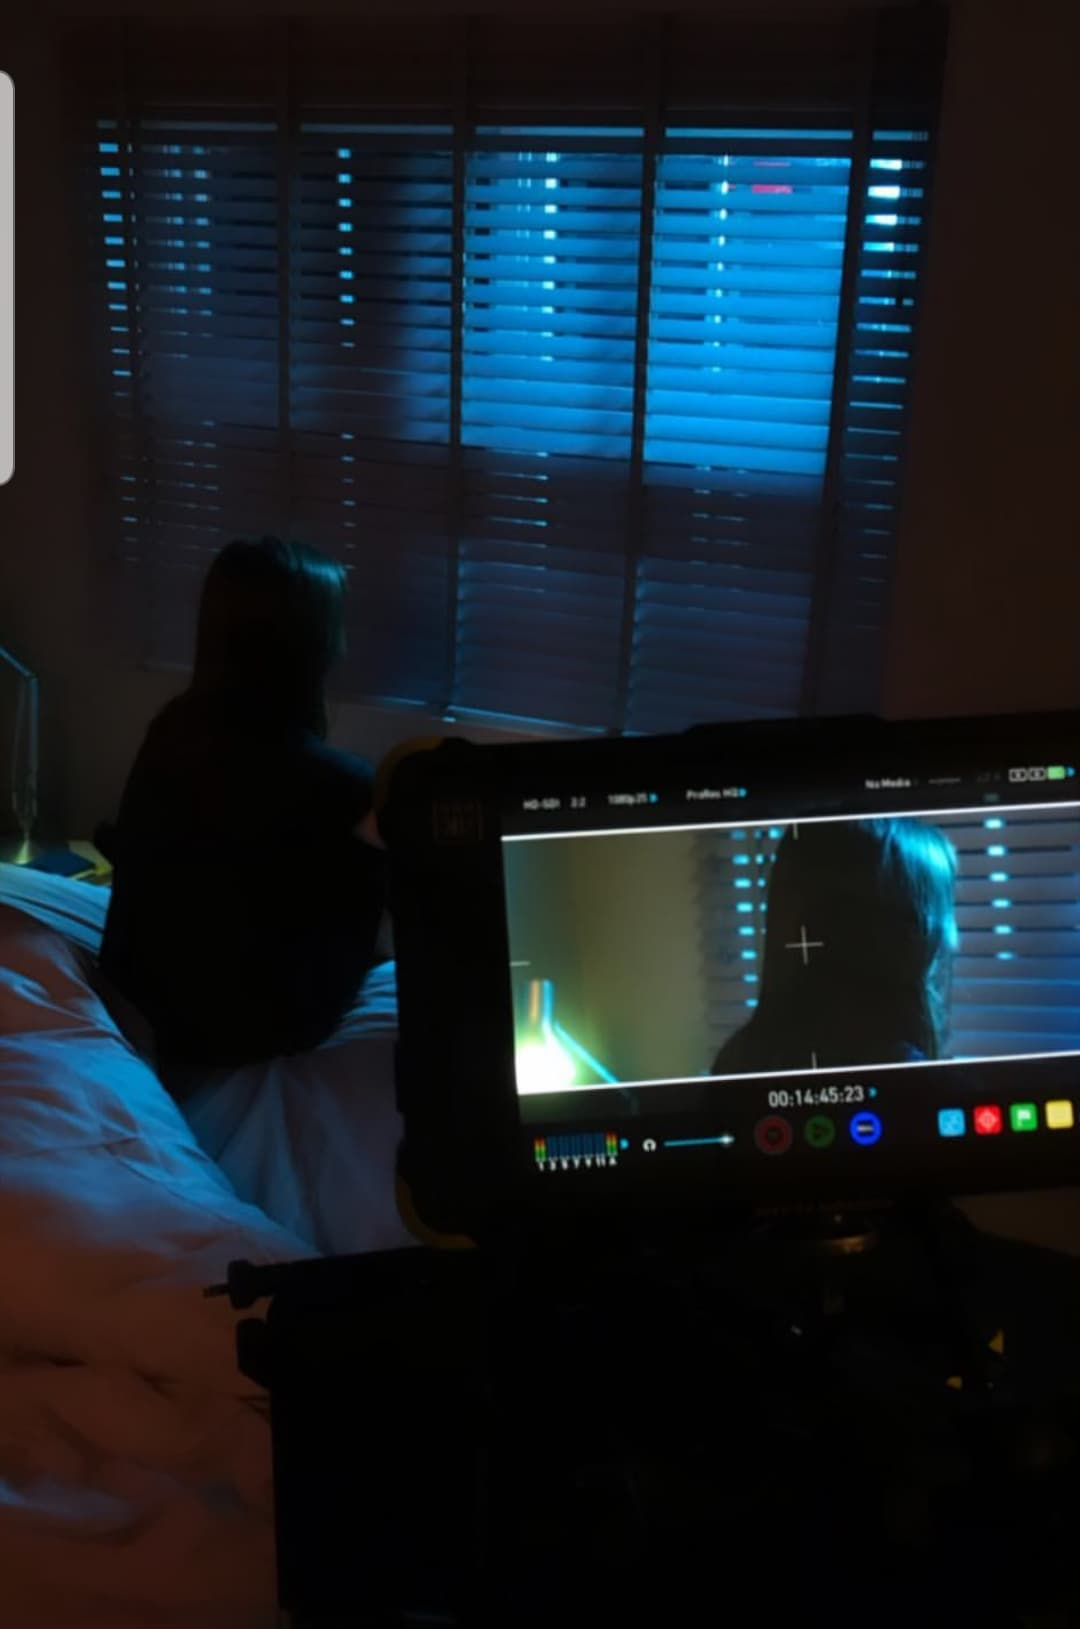 Viewed through a monitor on set, Katherine faces a moonlit window